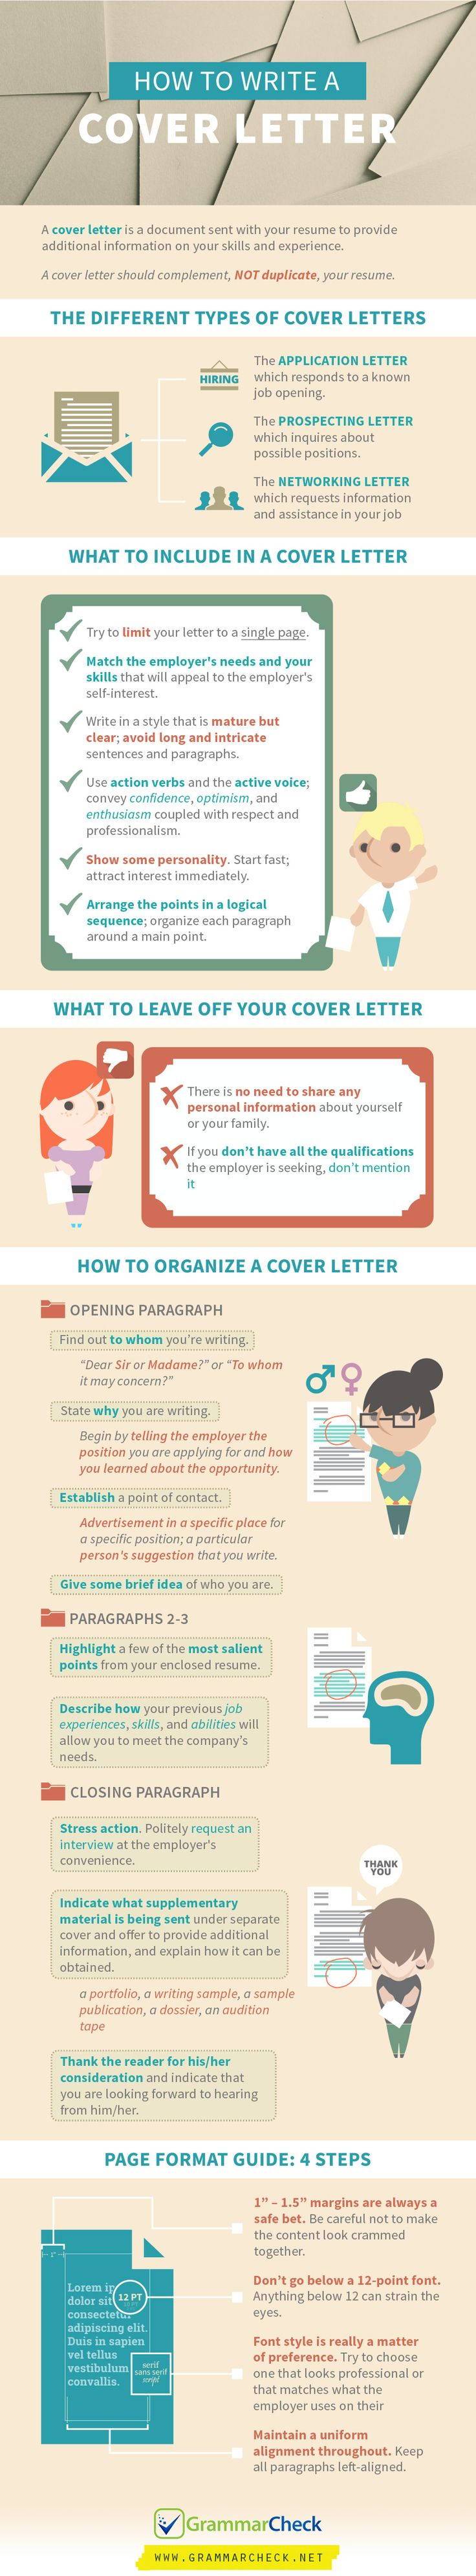 How to Write a Cover Letter - Step by Step (Infographic)